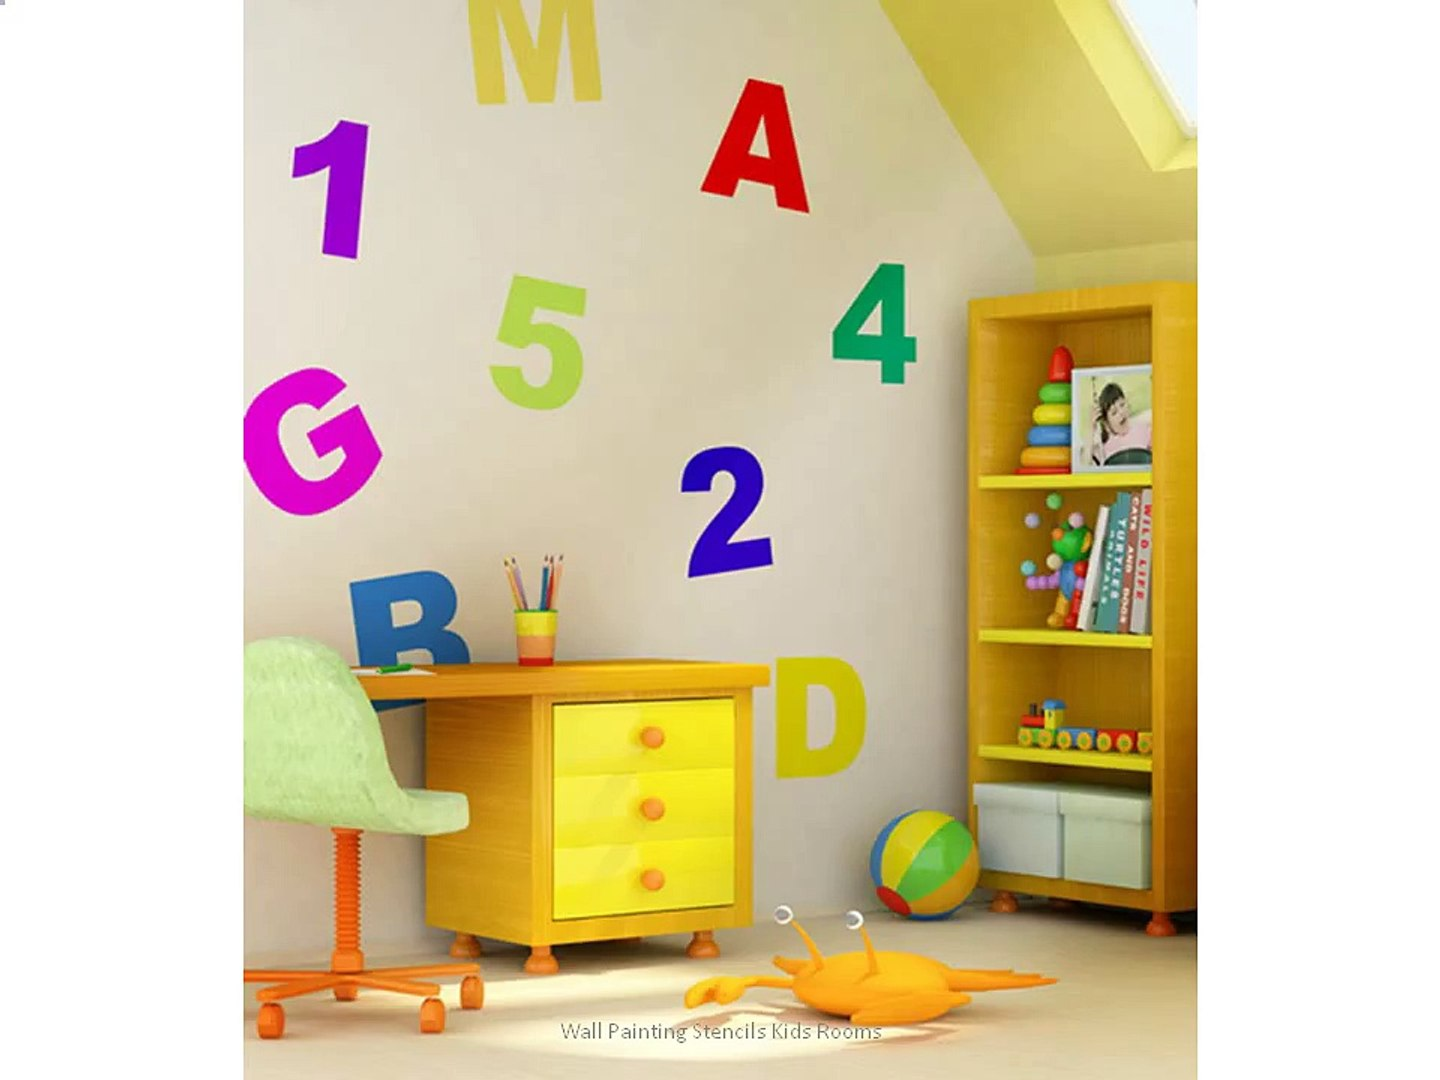 Wall Painting Stencils Kids Rooms